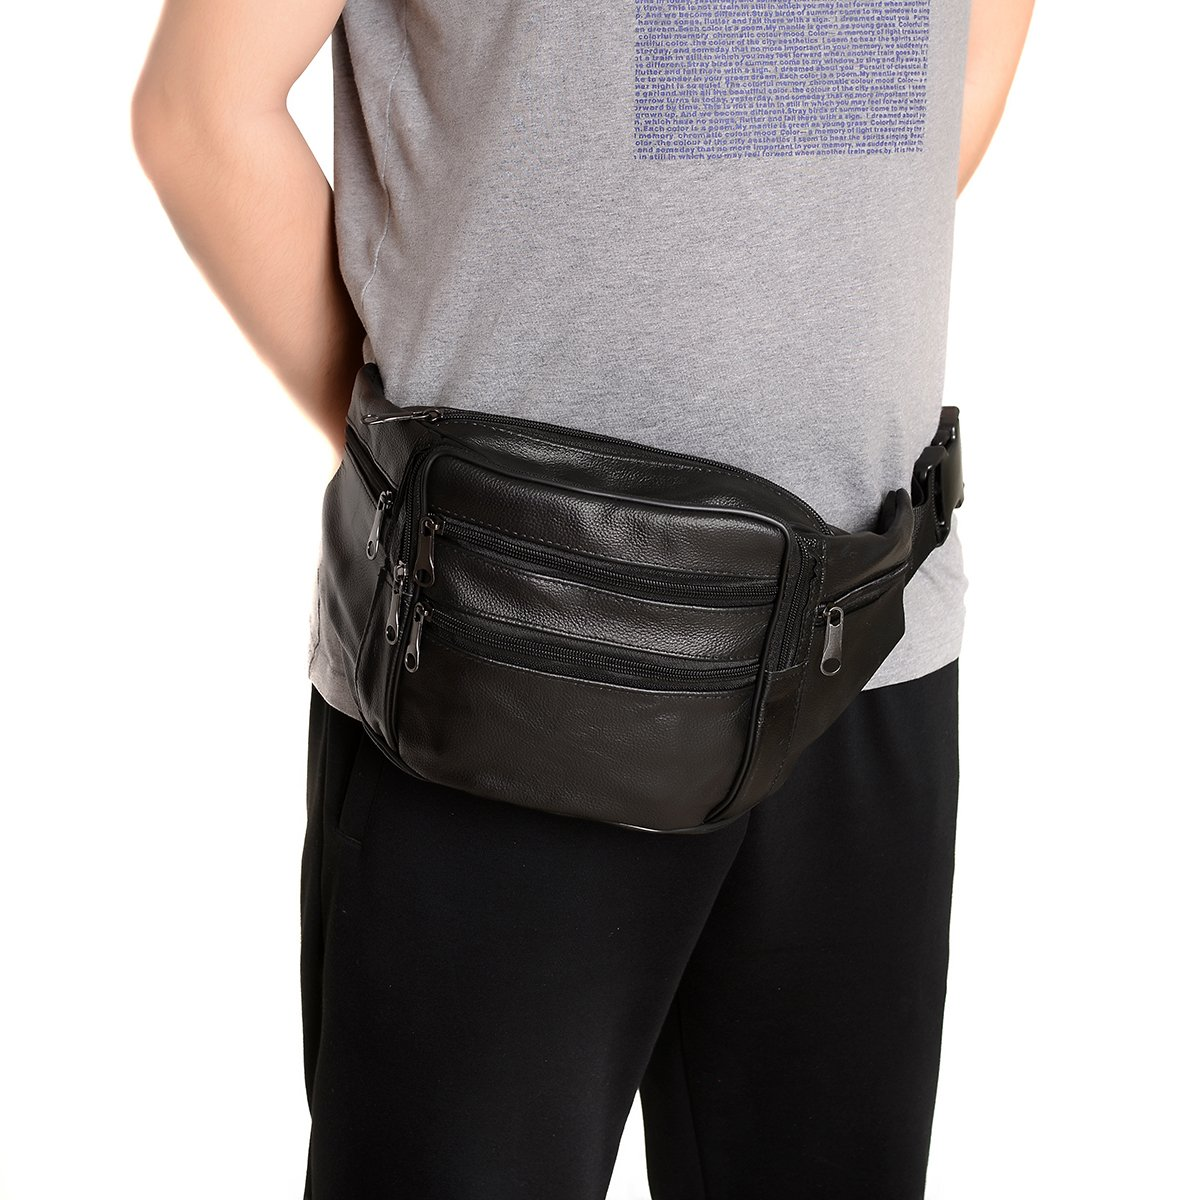 FANNING511 Big Fanny pack.Waist Pack Cowhide Leather Large Size 7 Pockets Fanny Pack Black